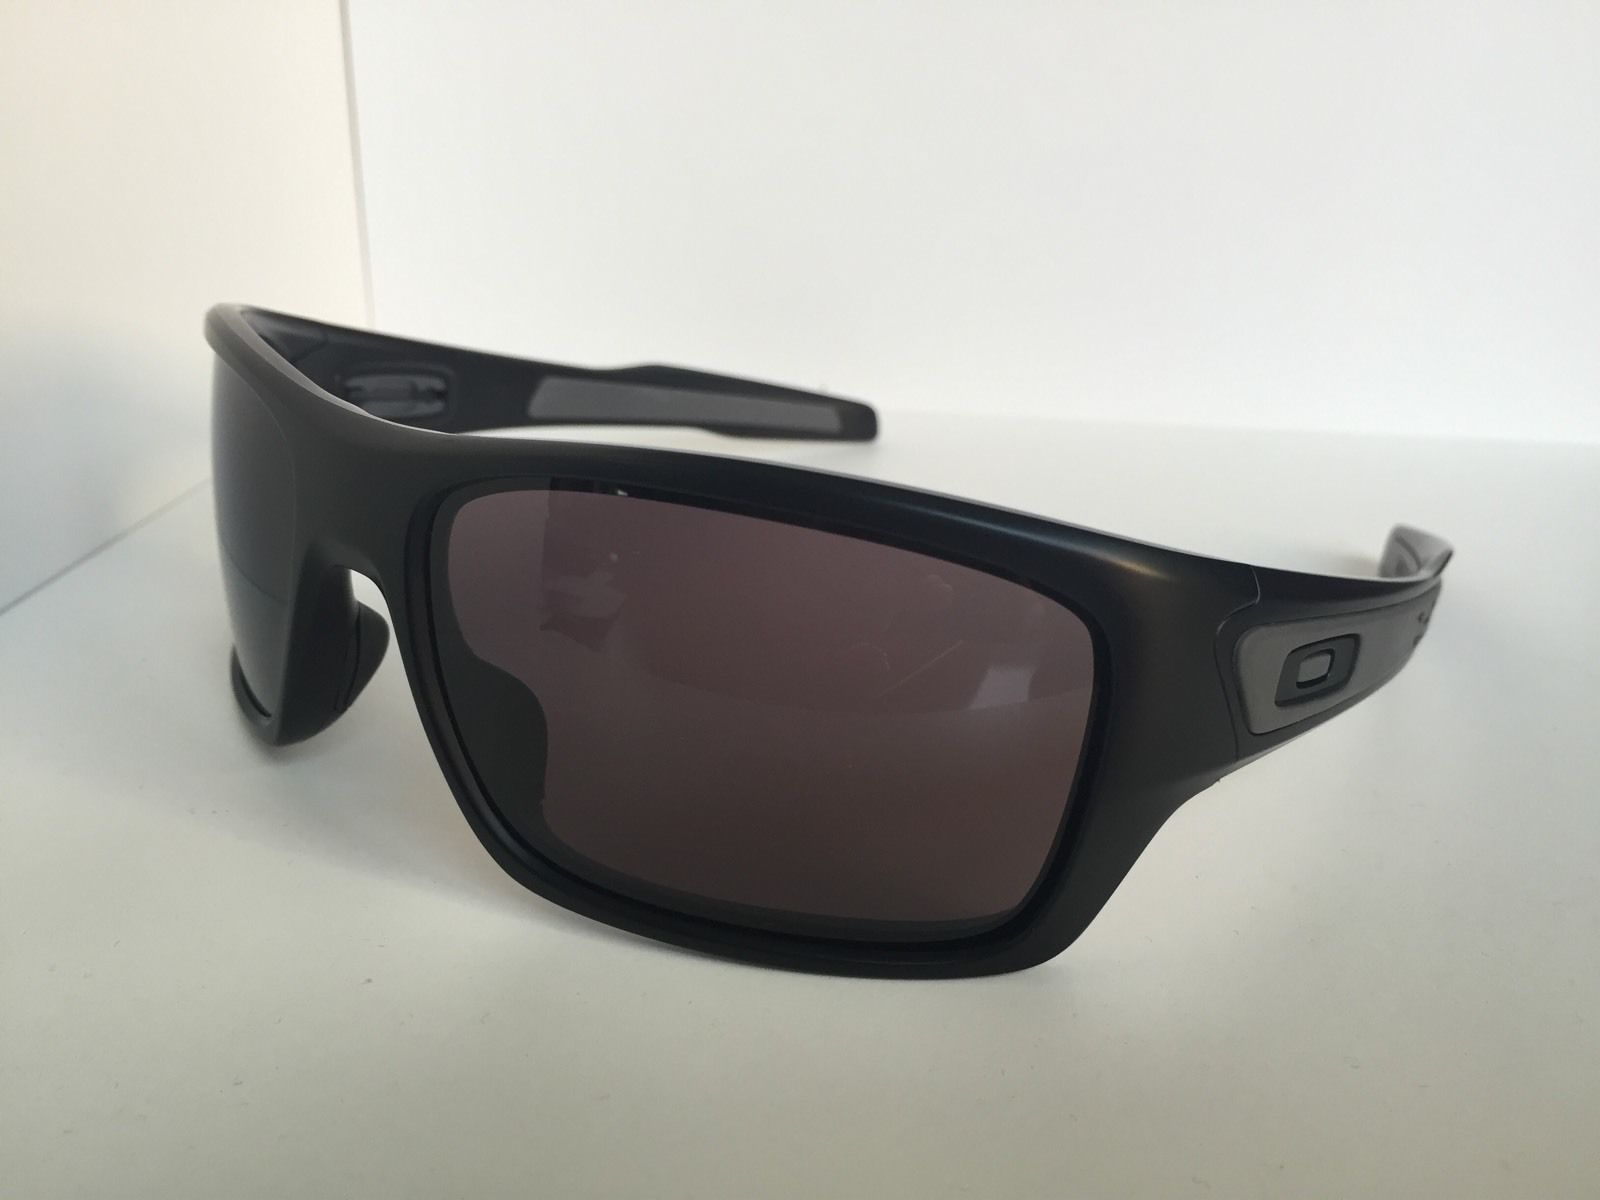 Oakley TURBINE OO9263-01 65mm Matte Black Men s Sunglasses  mens  sunglasses   black 5f907d6094